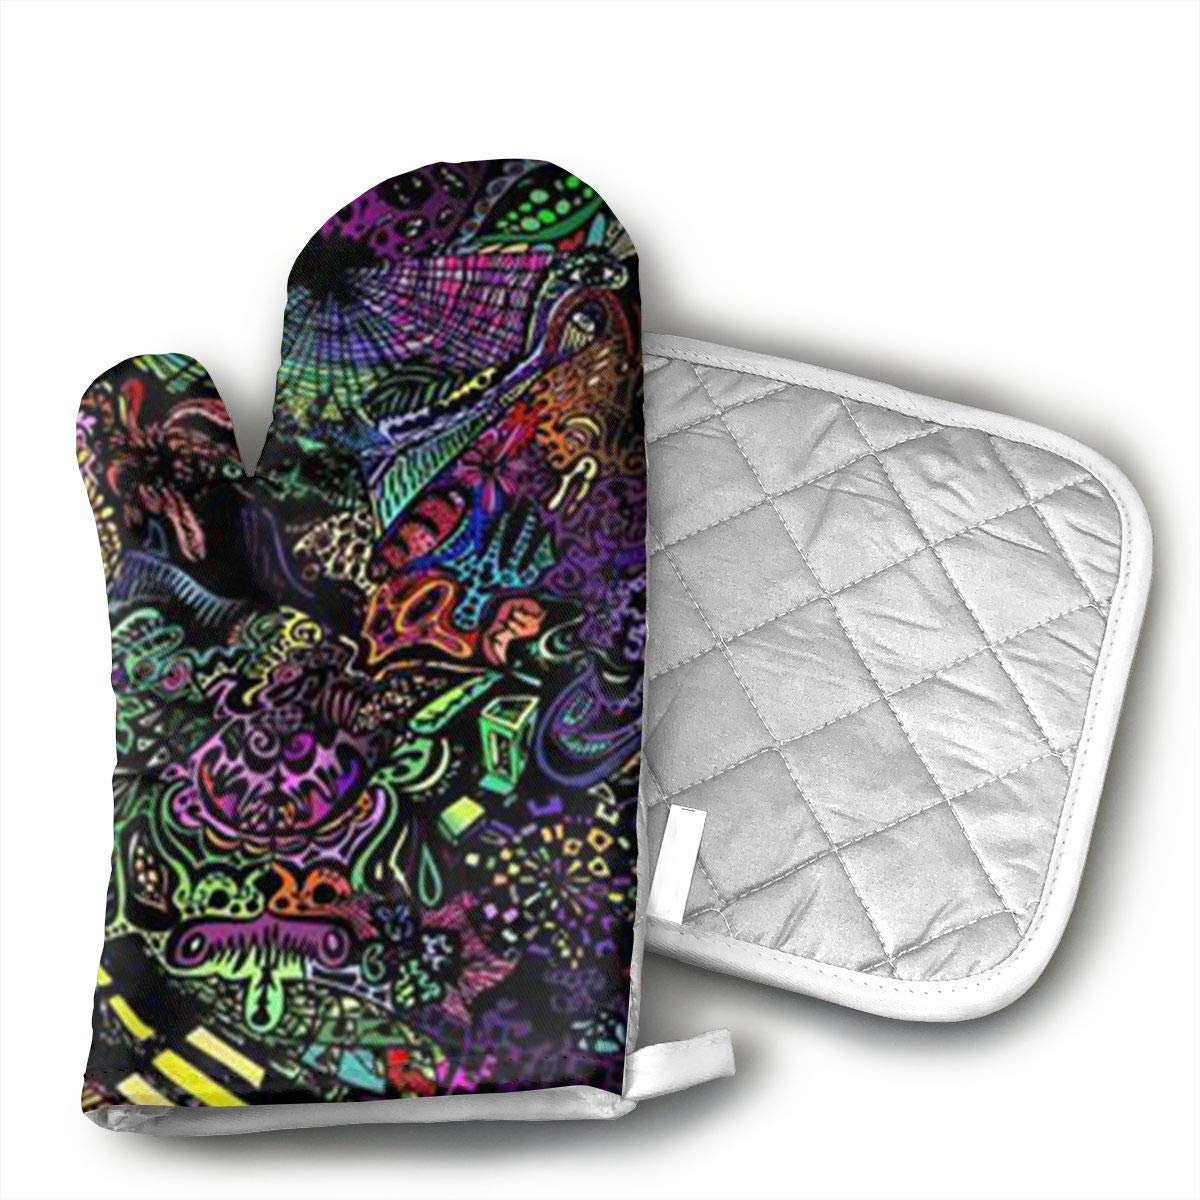 3D Wallpapers Oven Mitts Kitchen Gloves and Pot Holders 2pcs for Kitchen Set with Cotton Neoprene Silicone Non-Slip Grip,Heat Resistant,Oven Gloves for BBQ Cooking Baking Grilling